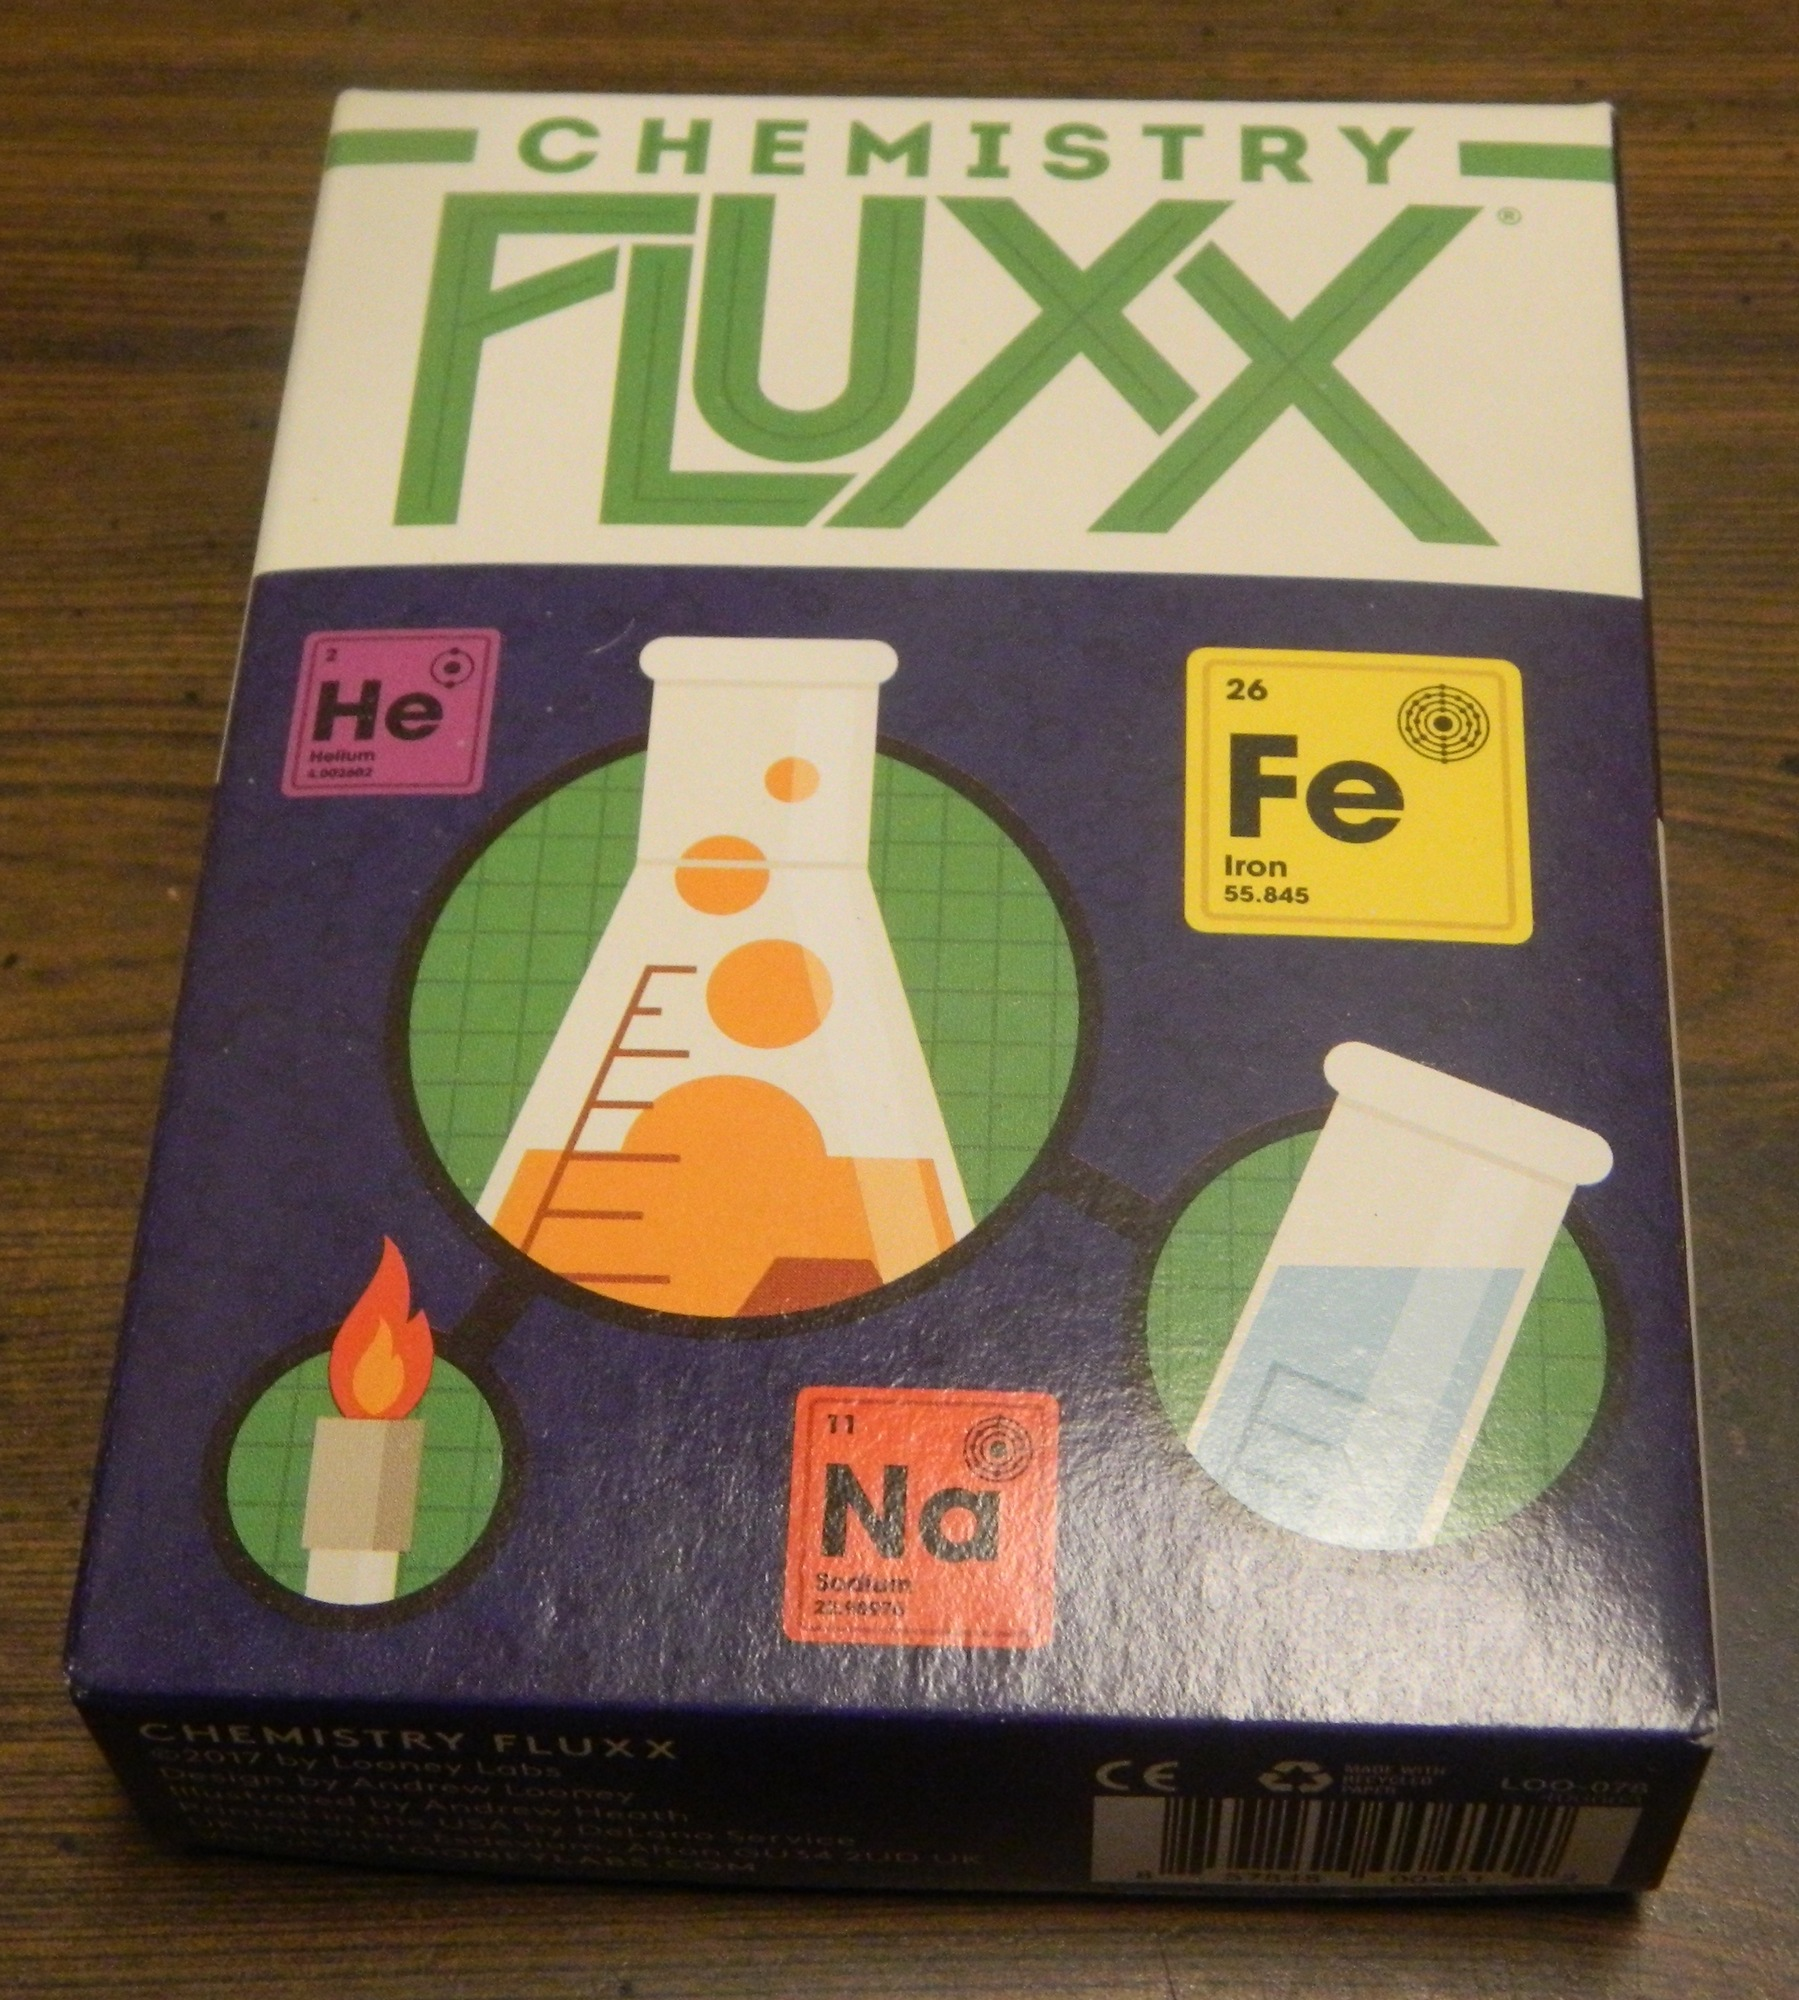 Box for Chemistry Fluxx